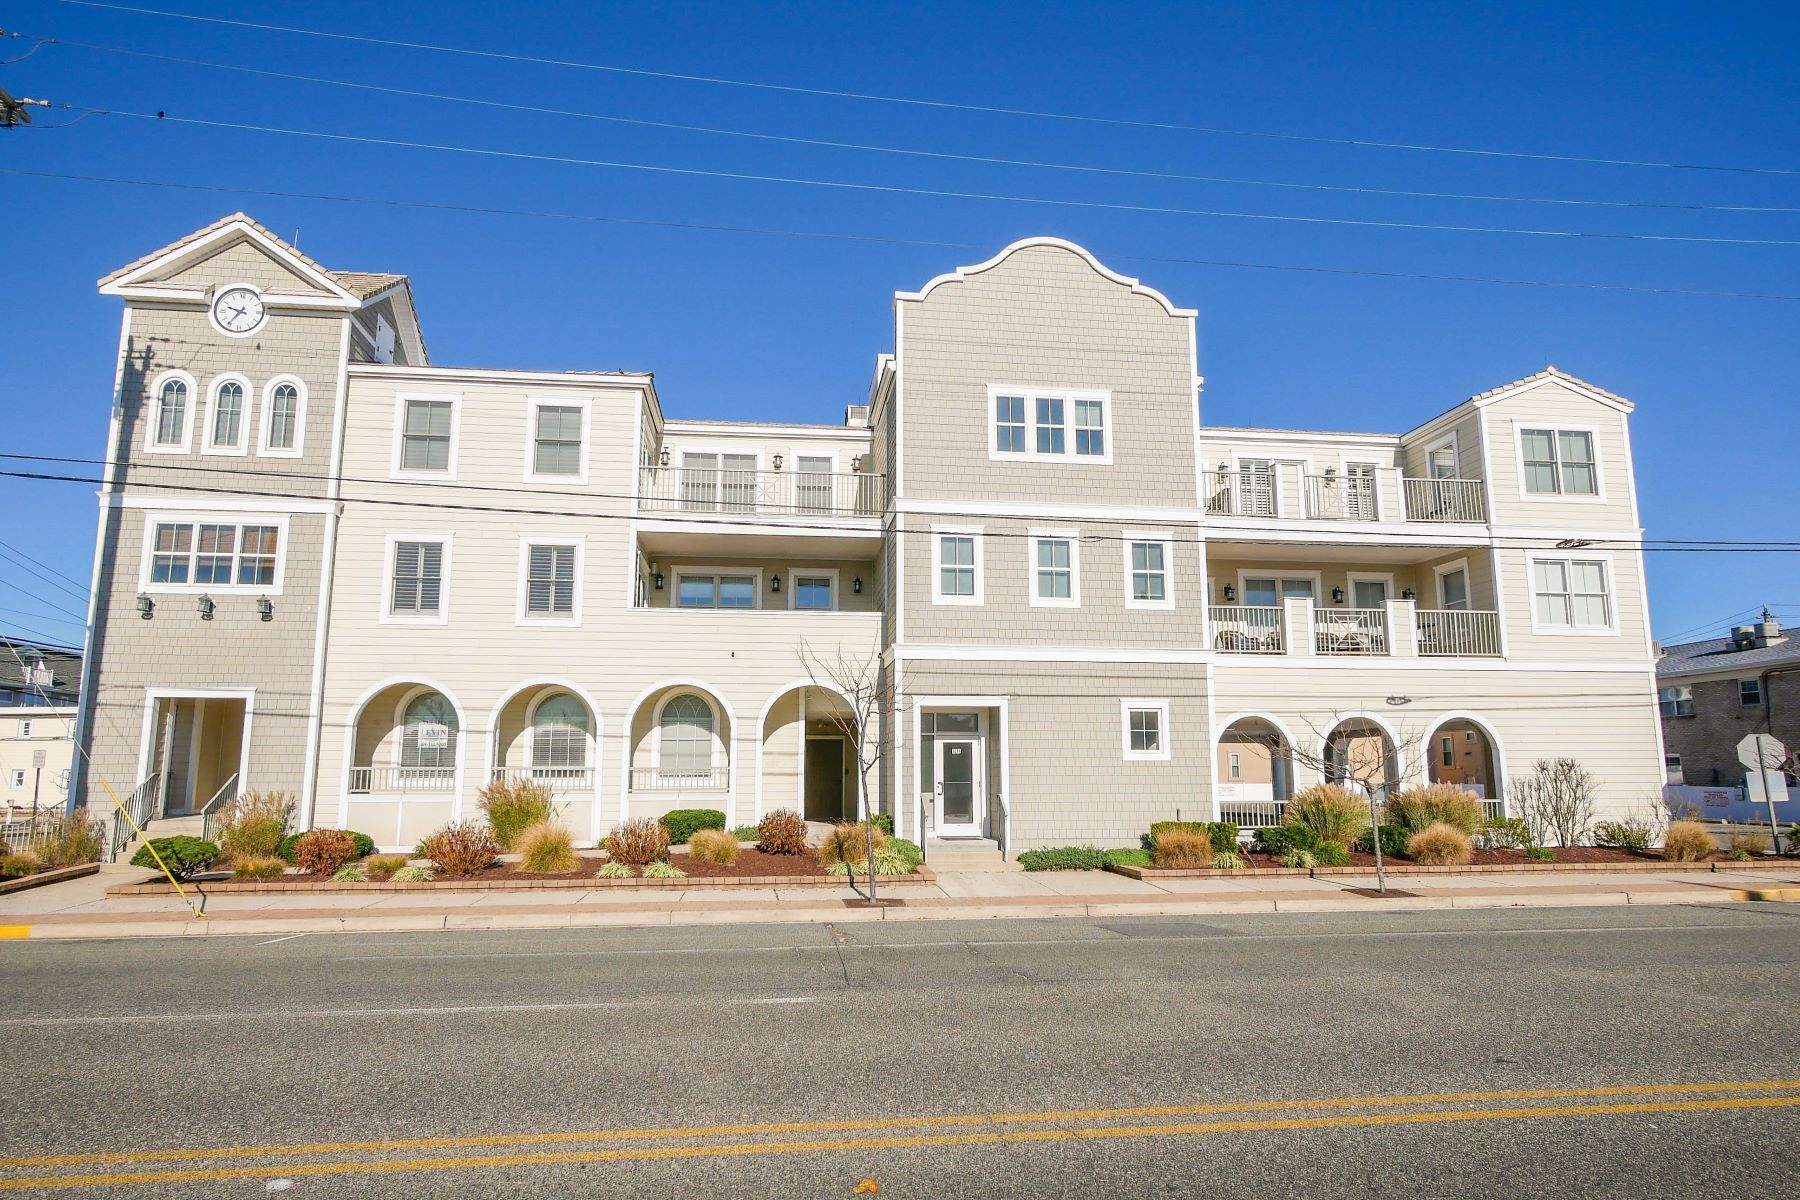 Condominiums for Rent at 9219 Atlantic Ave Unit #1, JULY 2020, Margate, New Jersey 08402 United States